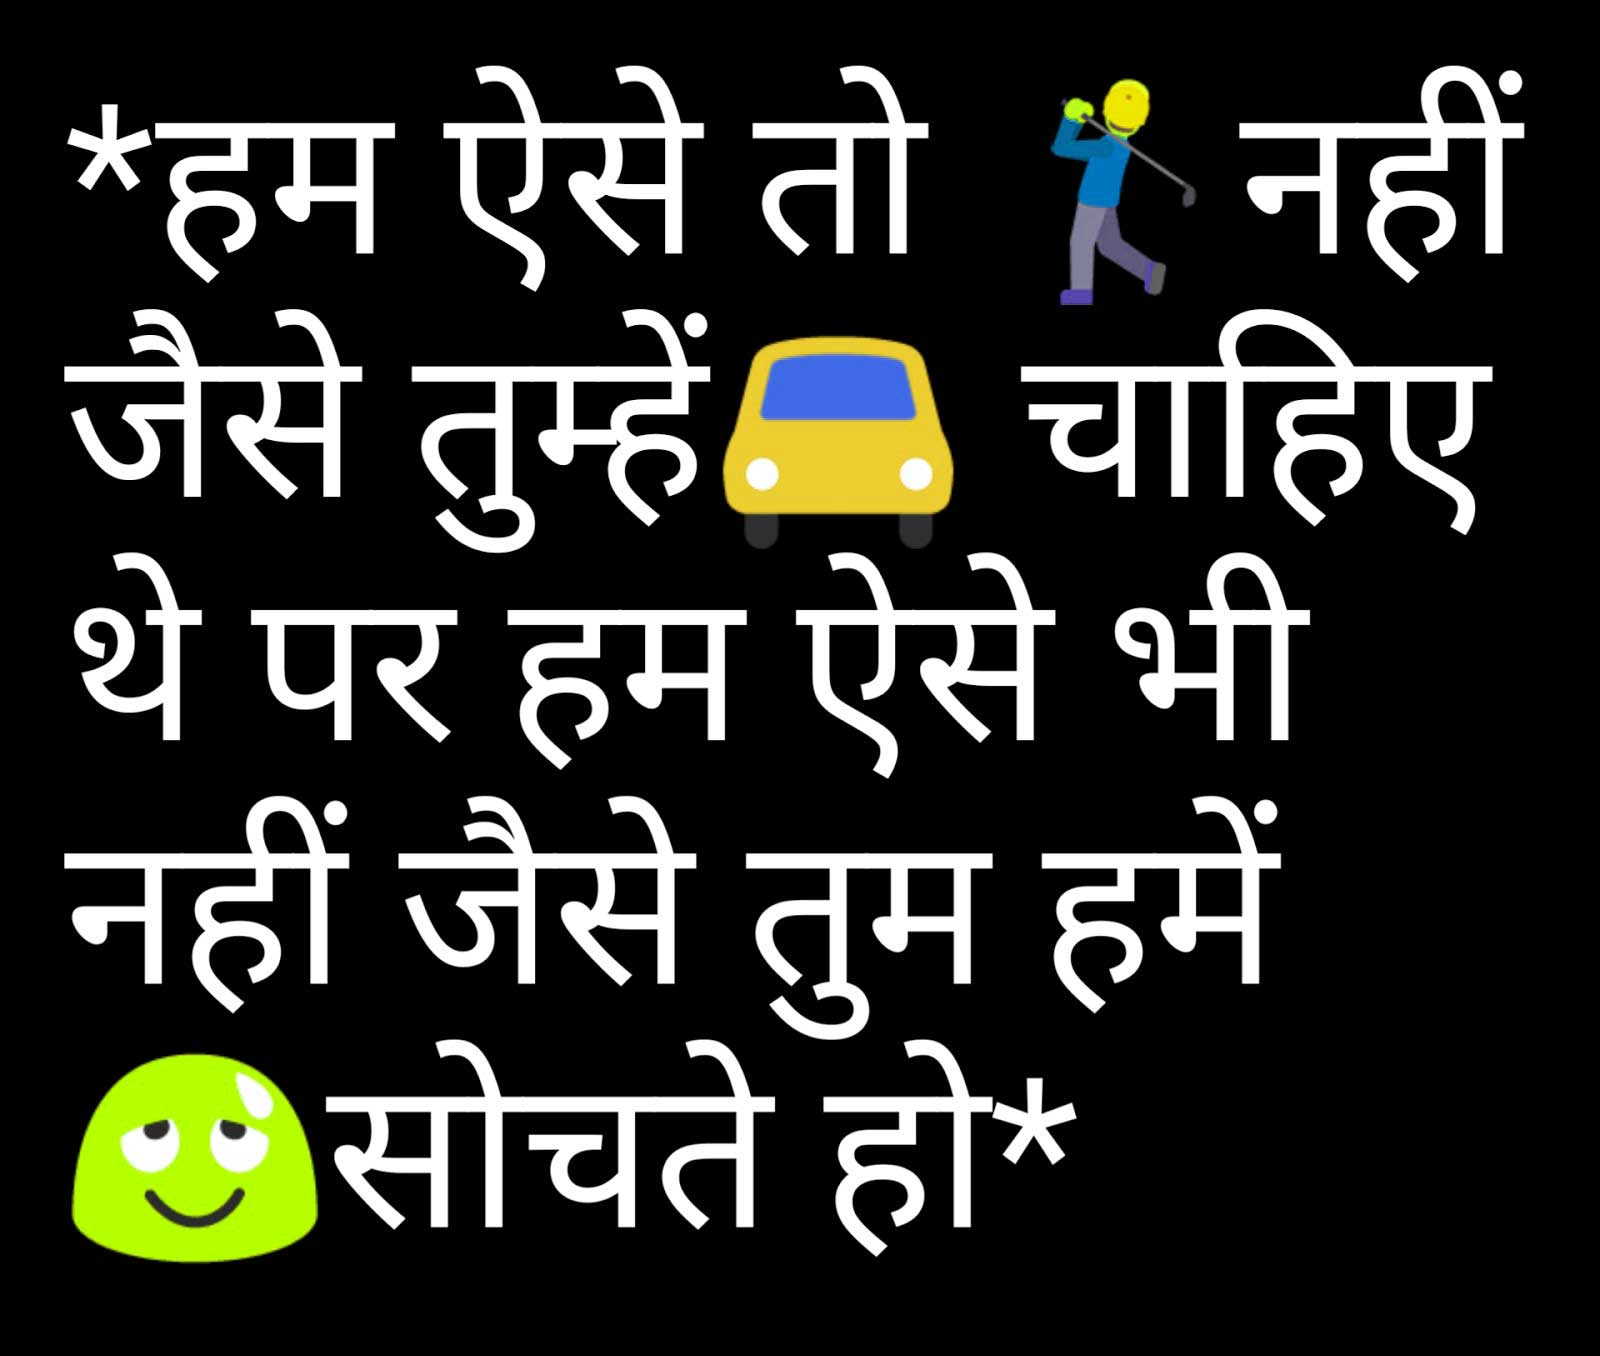 New Judai Shayari Images wallapper